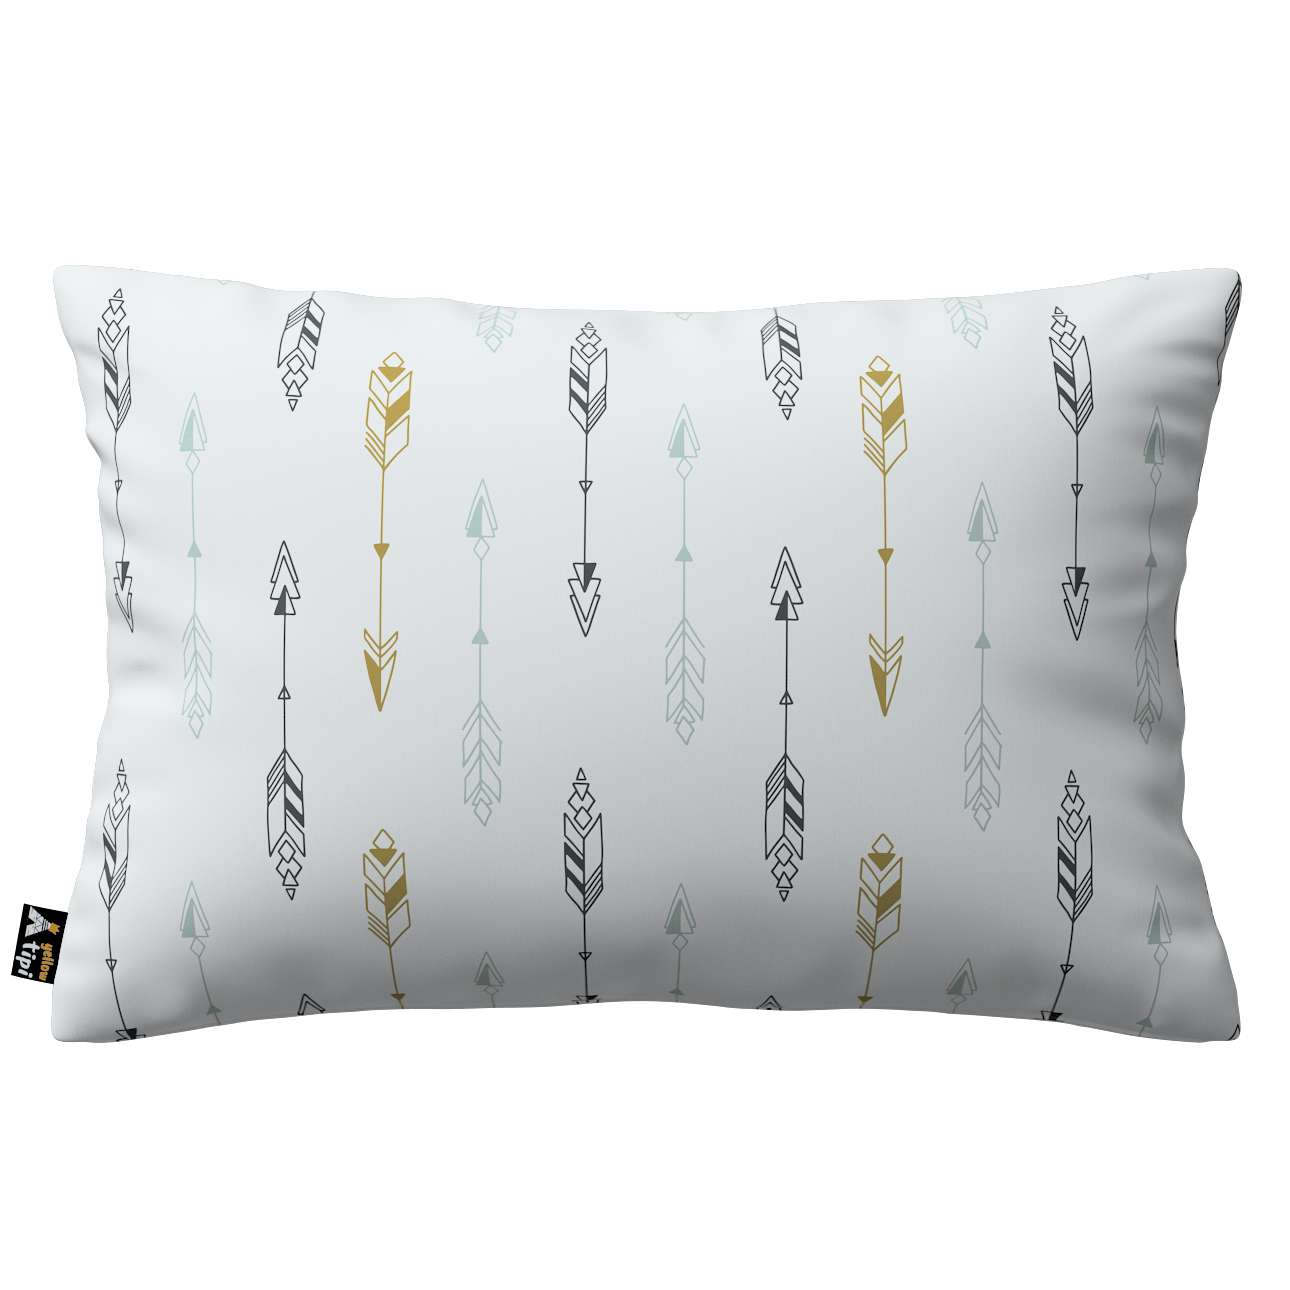 Milly rectangular cushion cover in collection Magic Collection, fabric: 500-07